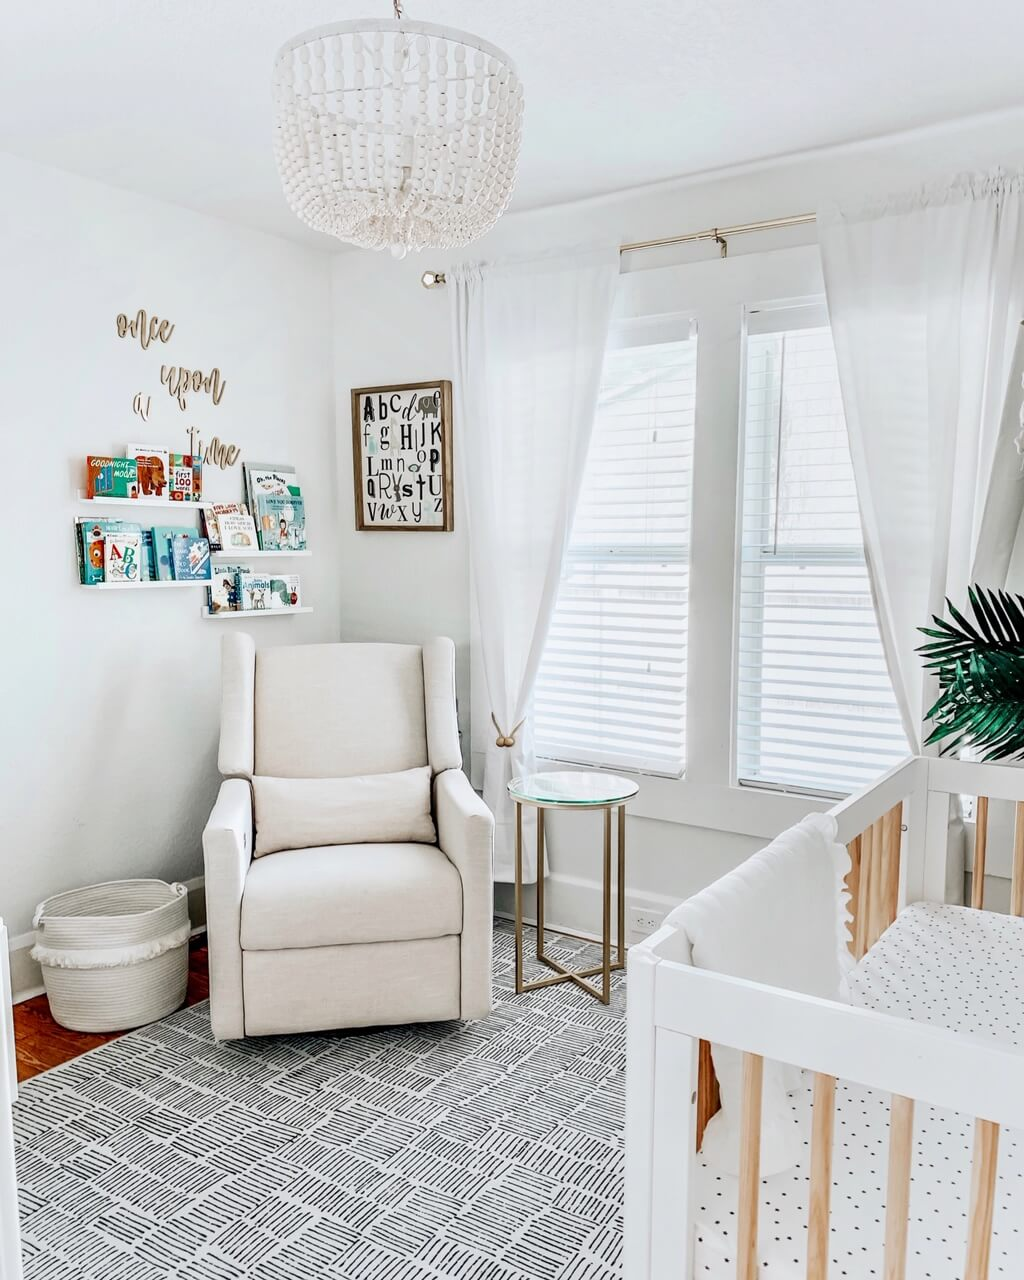 Dreamy white bohemian nursery design with pattern area rug